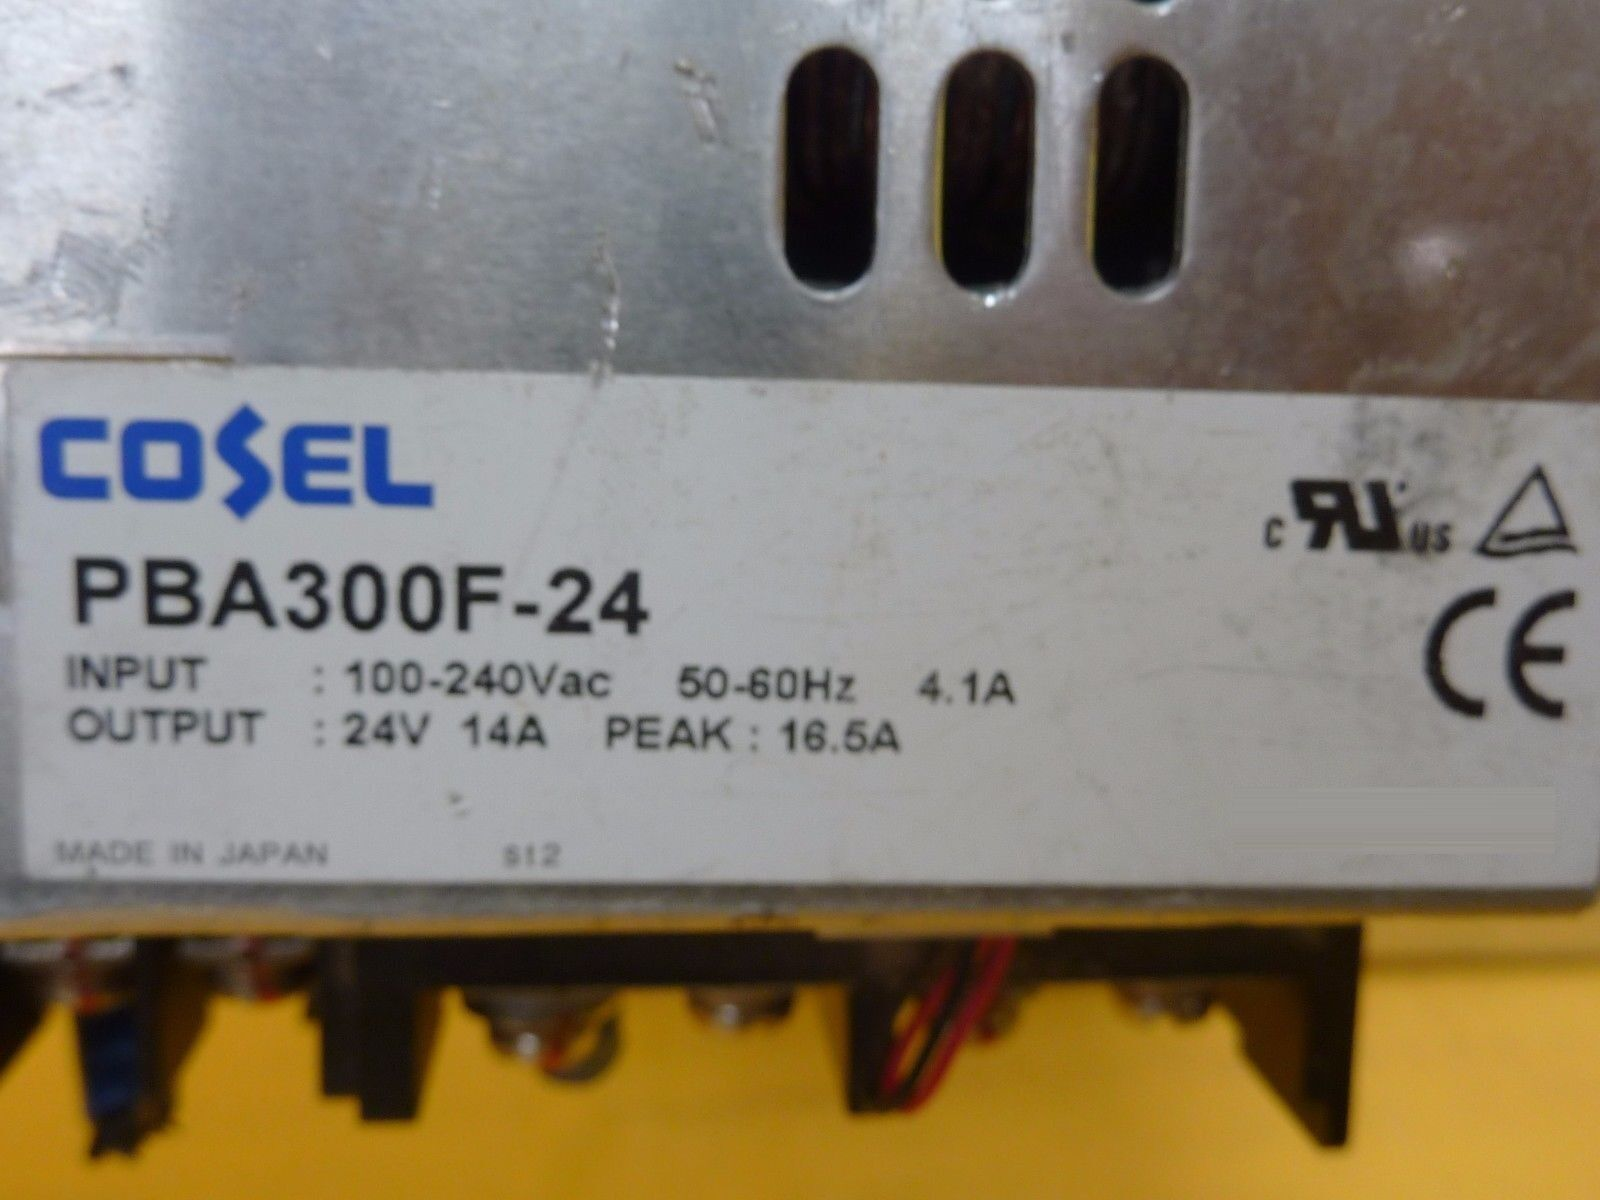 Cosel PBA300F-24 Power Supply MMC100A-2-N K10AU-5 R25A-12 P15E-5N Lot of 6 Used